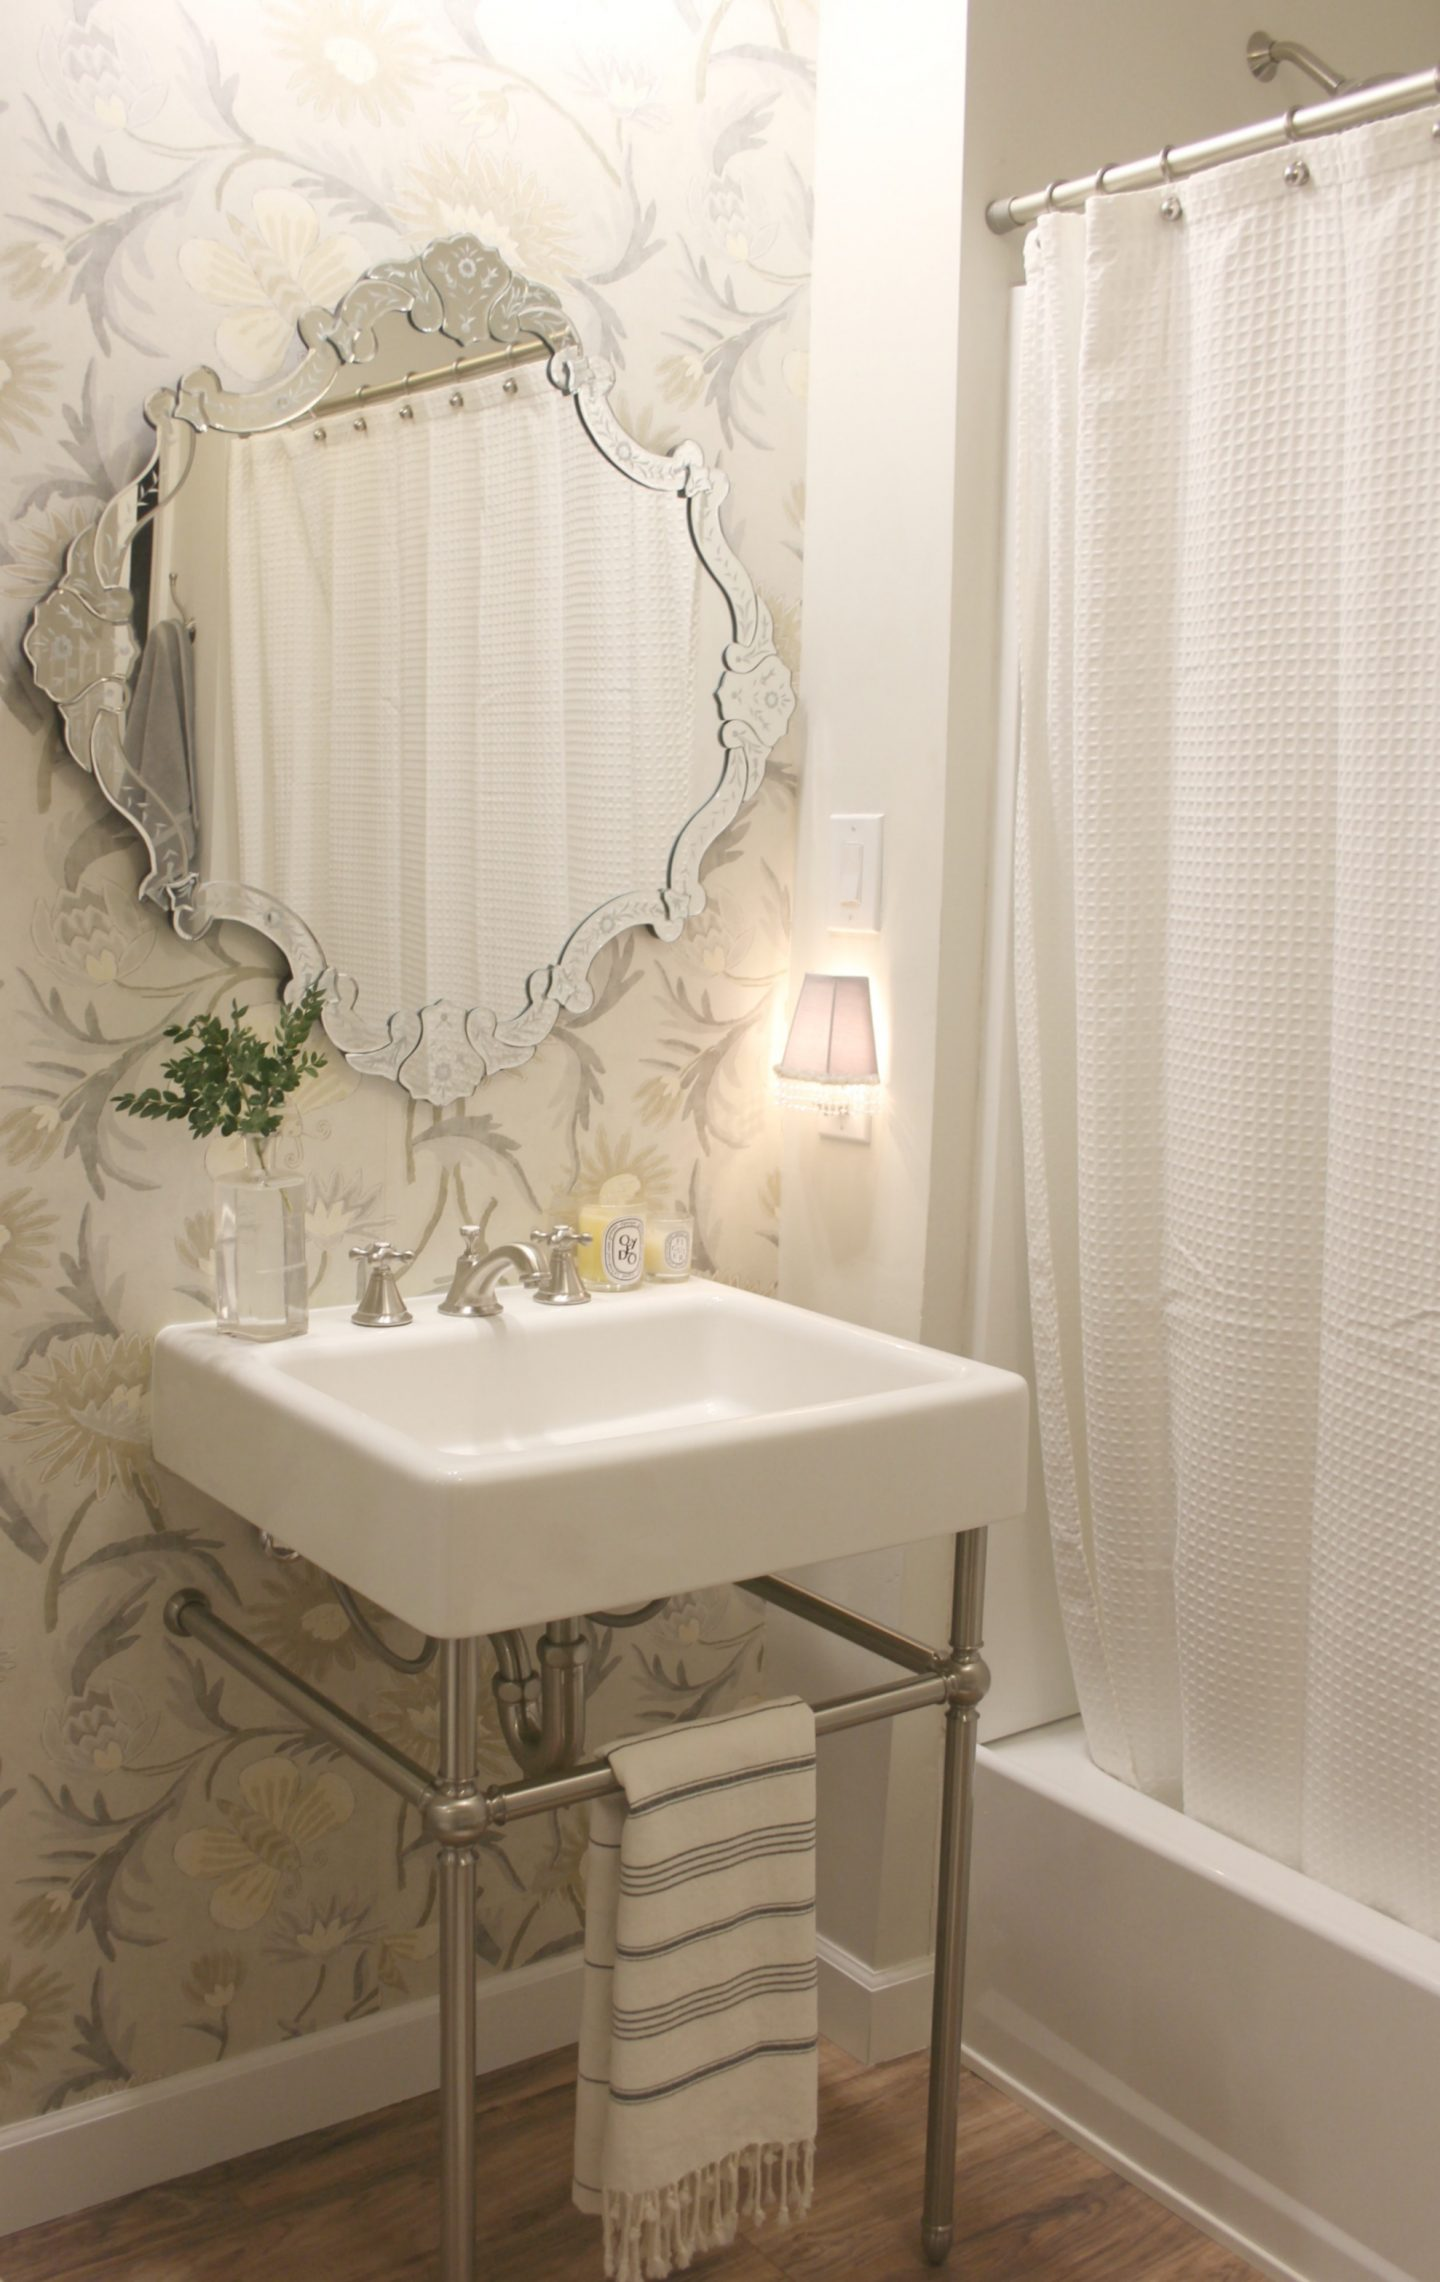 Classic bathroom with modern farmhouse fireclay console sink by DXV. Wallpaper is Thibaut. Venetian mirror. Come explore How to Decorate a Room Without Breaking the Bank: Low Cost Design Reminders.